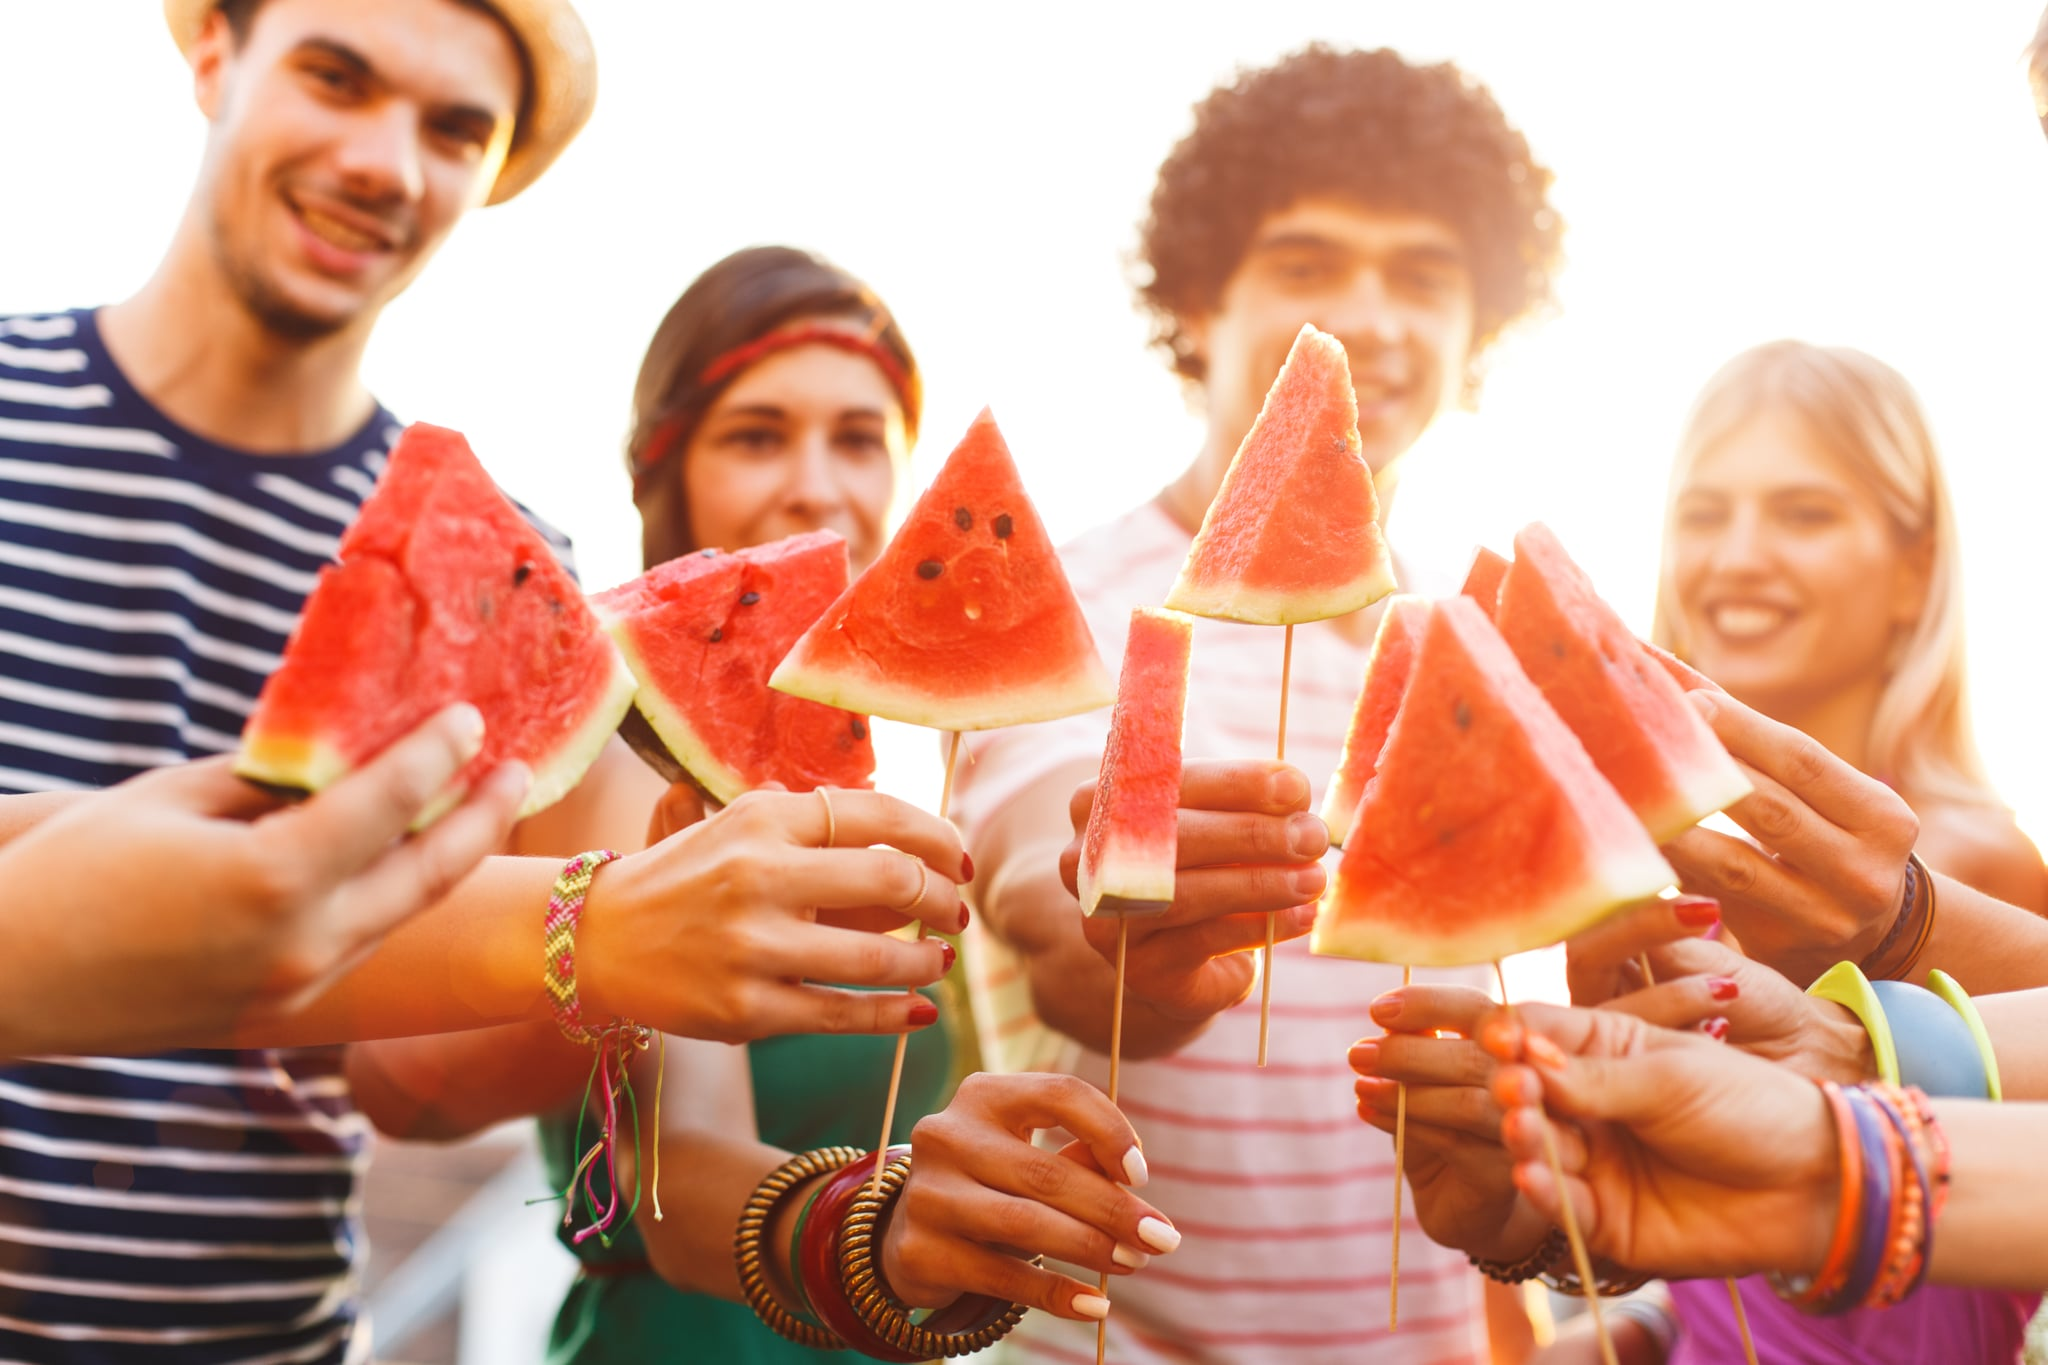 Group of young friends holding watermelon slices on a wooden stick on rooftop party, having fun, toasting.